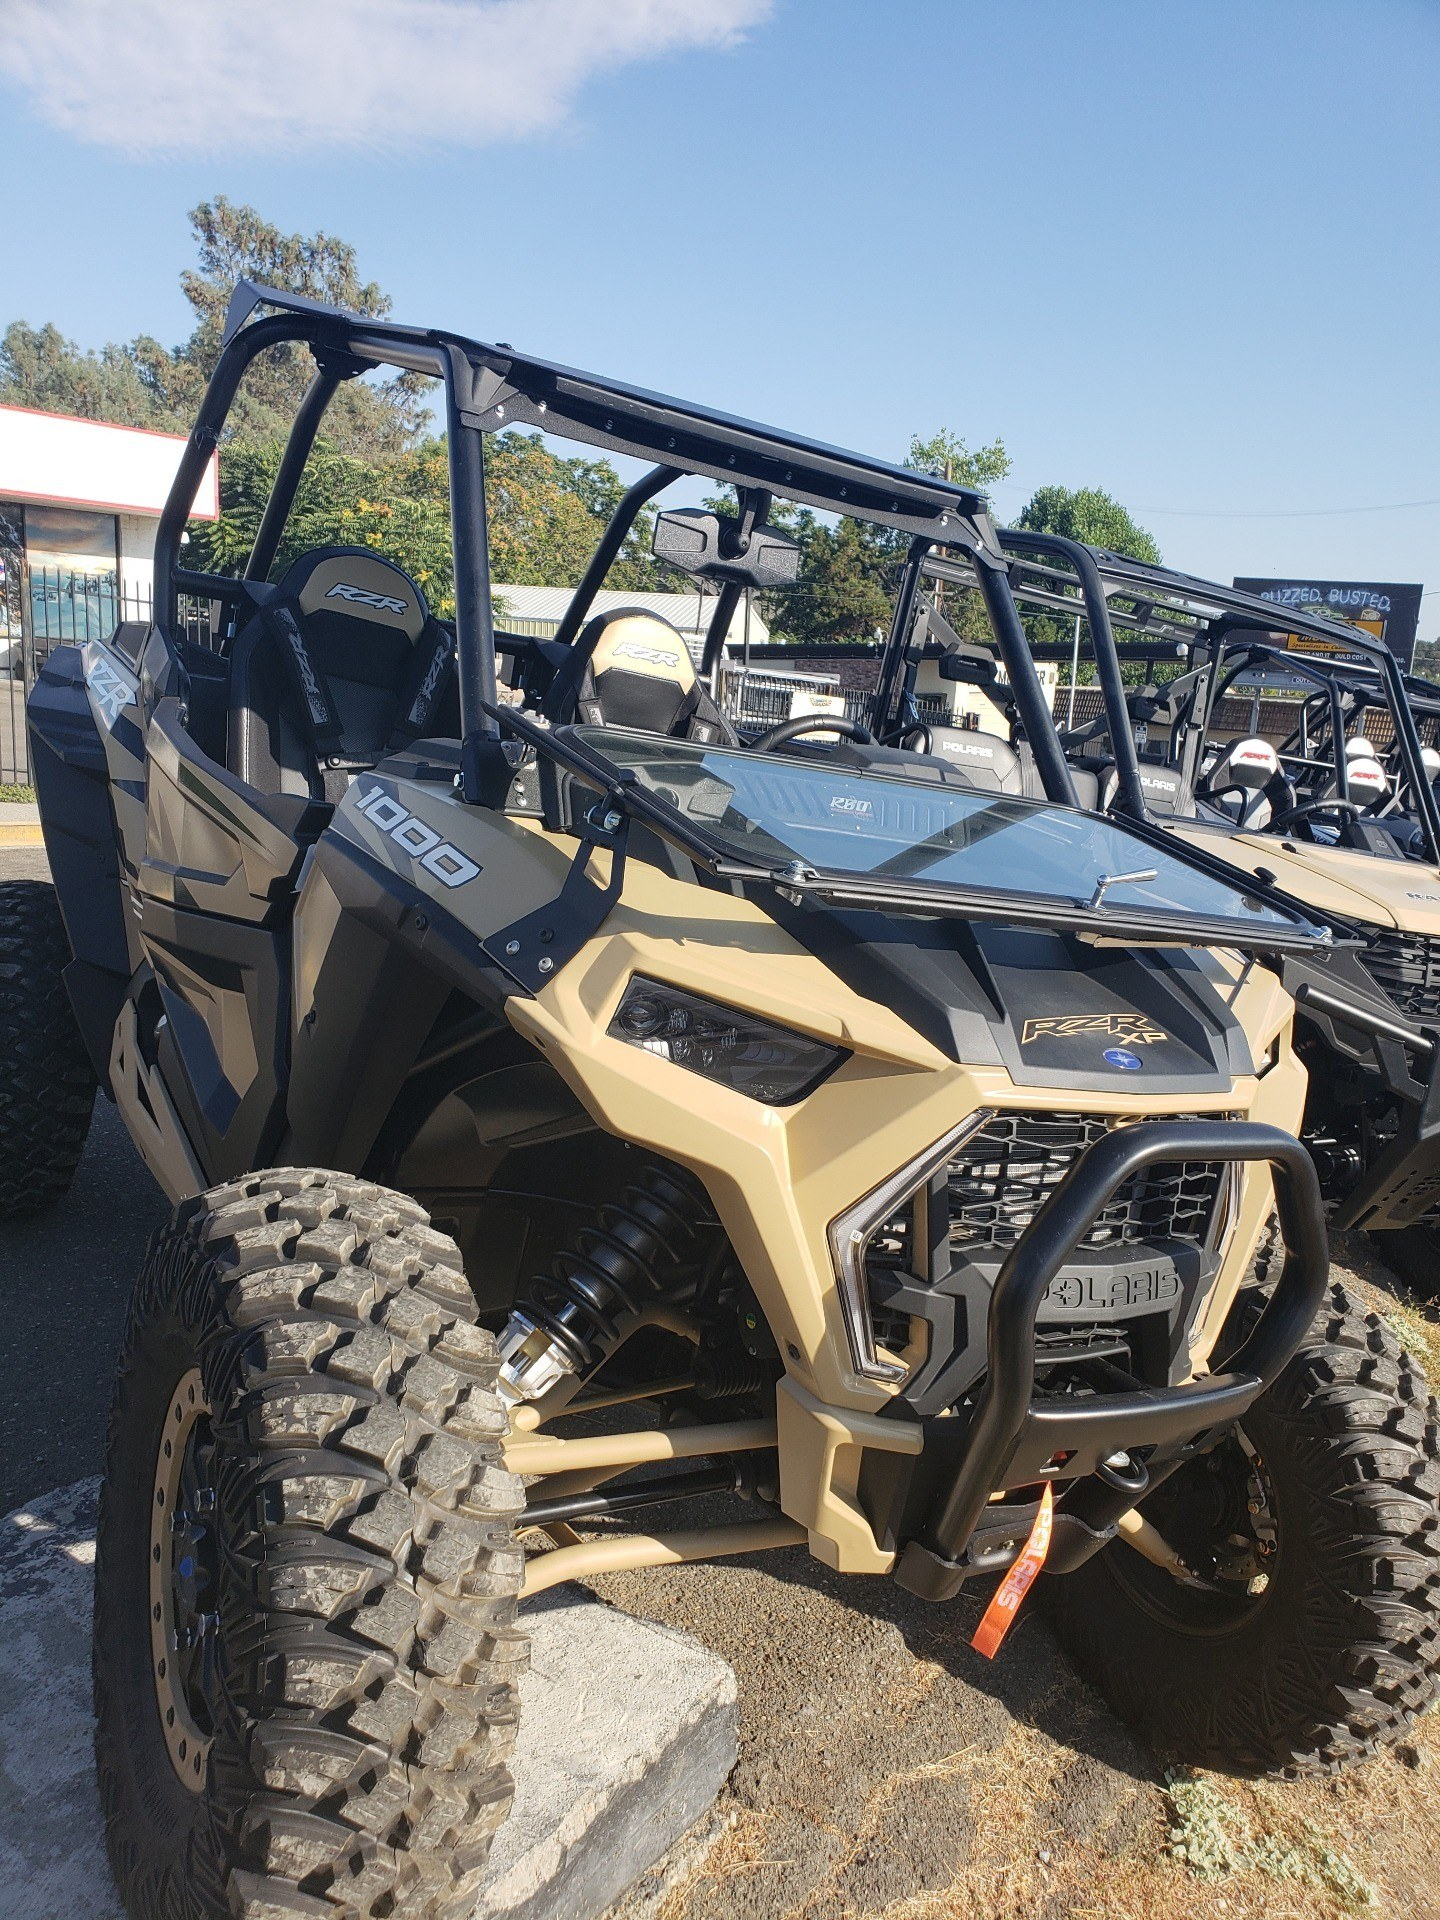 2020 Polaris RZR XP 1000 Trails & Rocks in Auburn, California - Photo 2